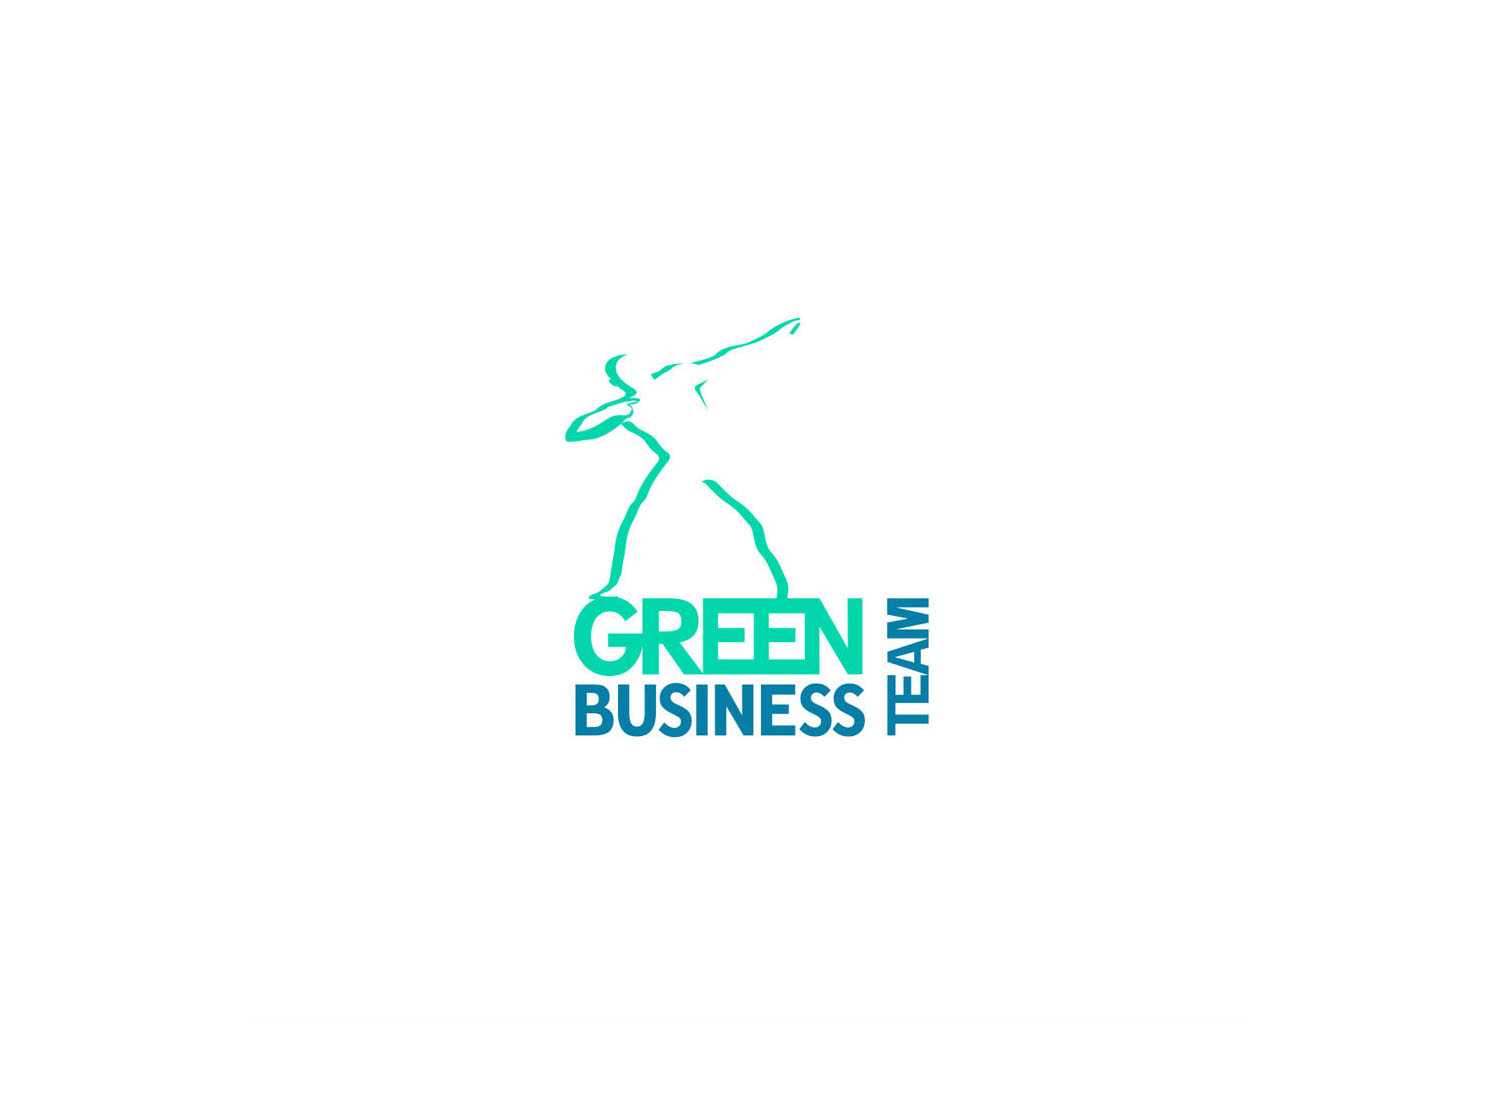 Logo-design-greenbusinessteam-by-lanagraphic